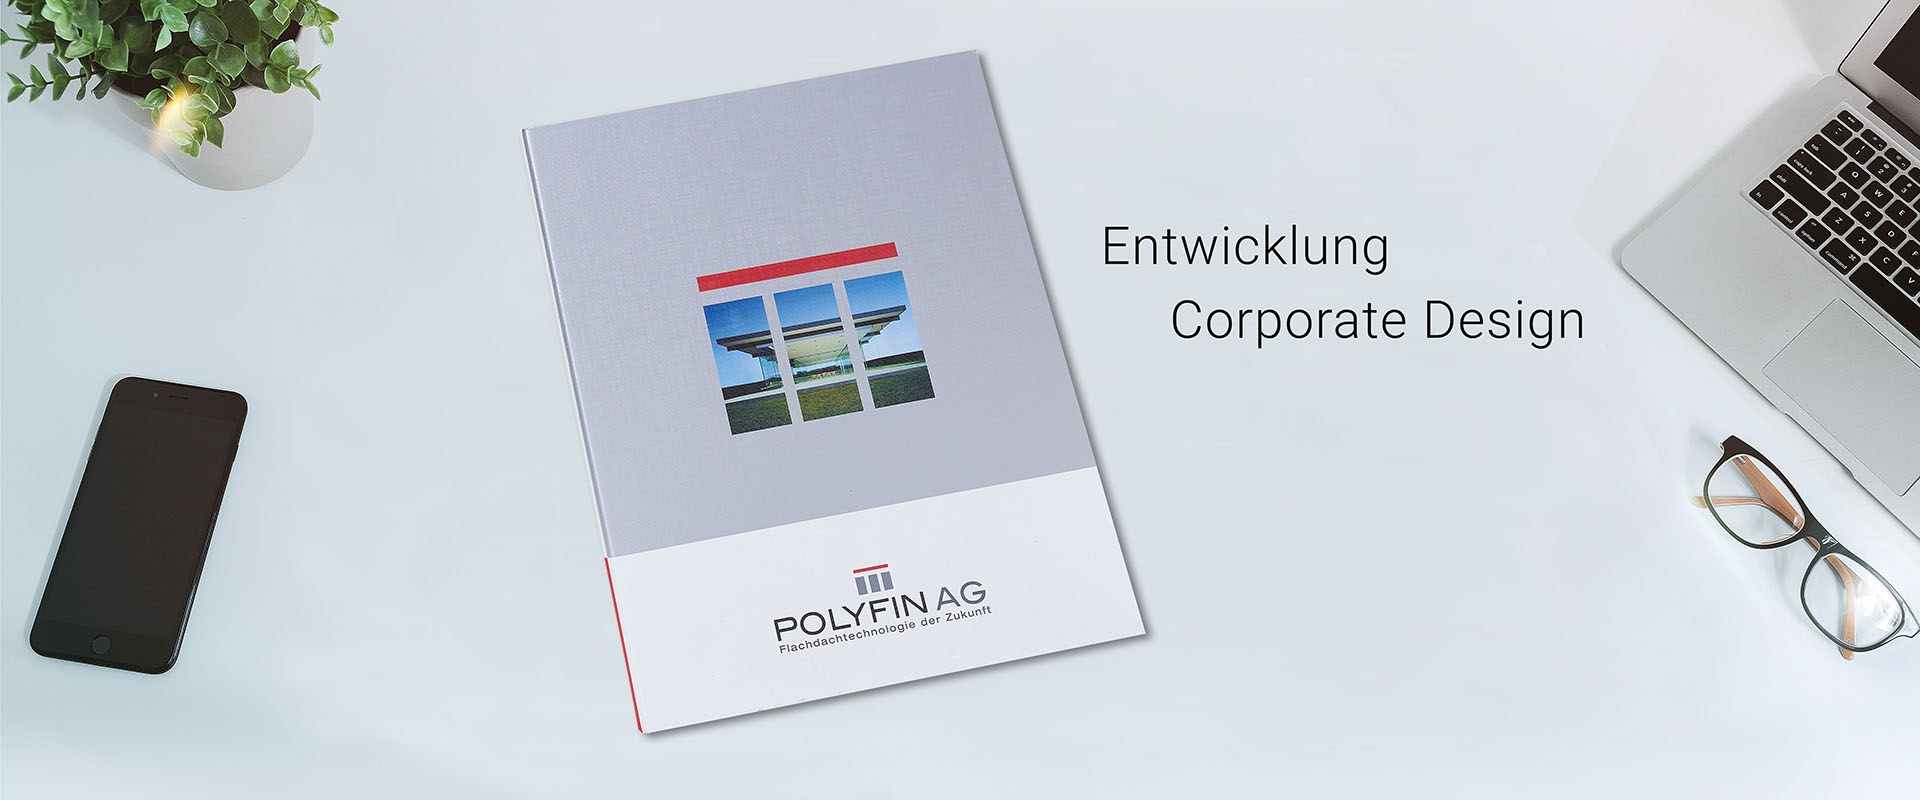 Corporate_Polyfin_800